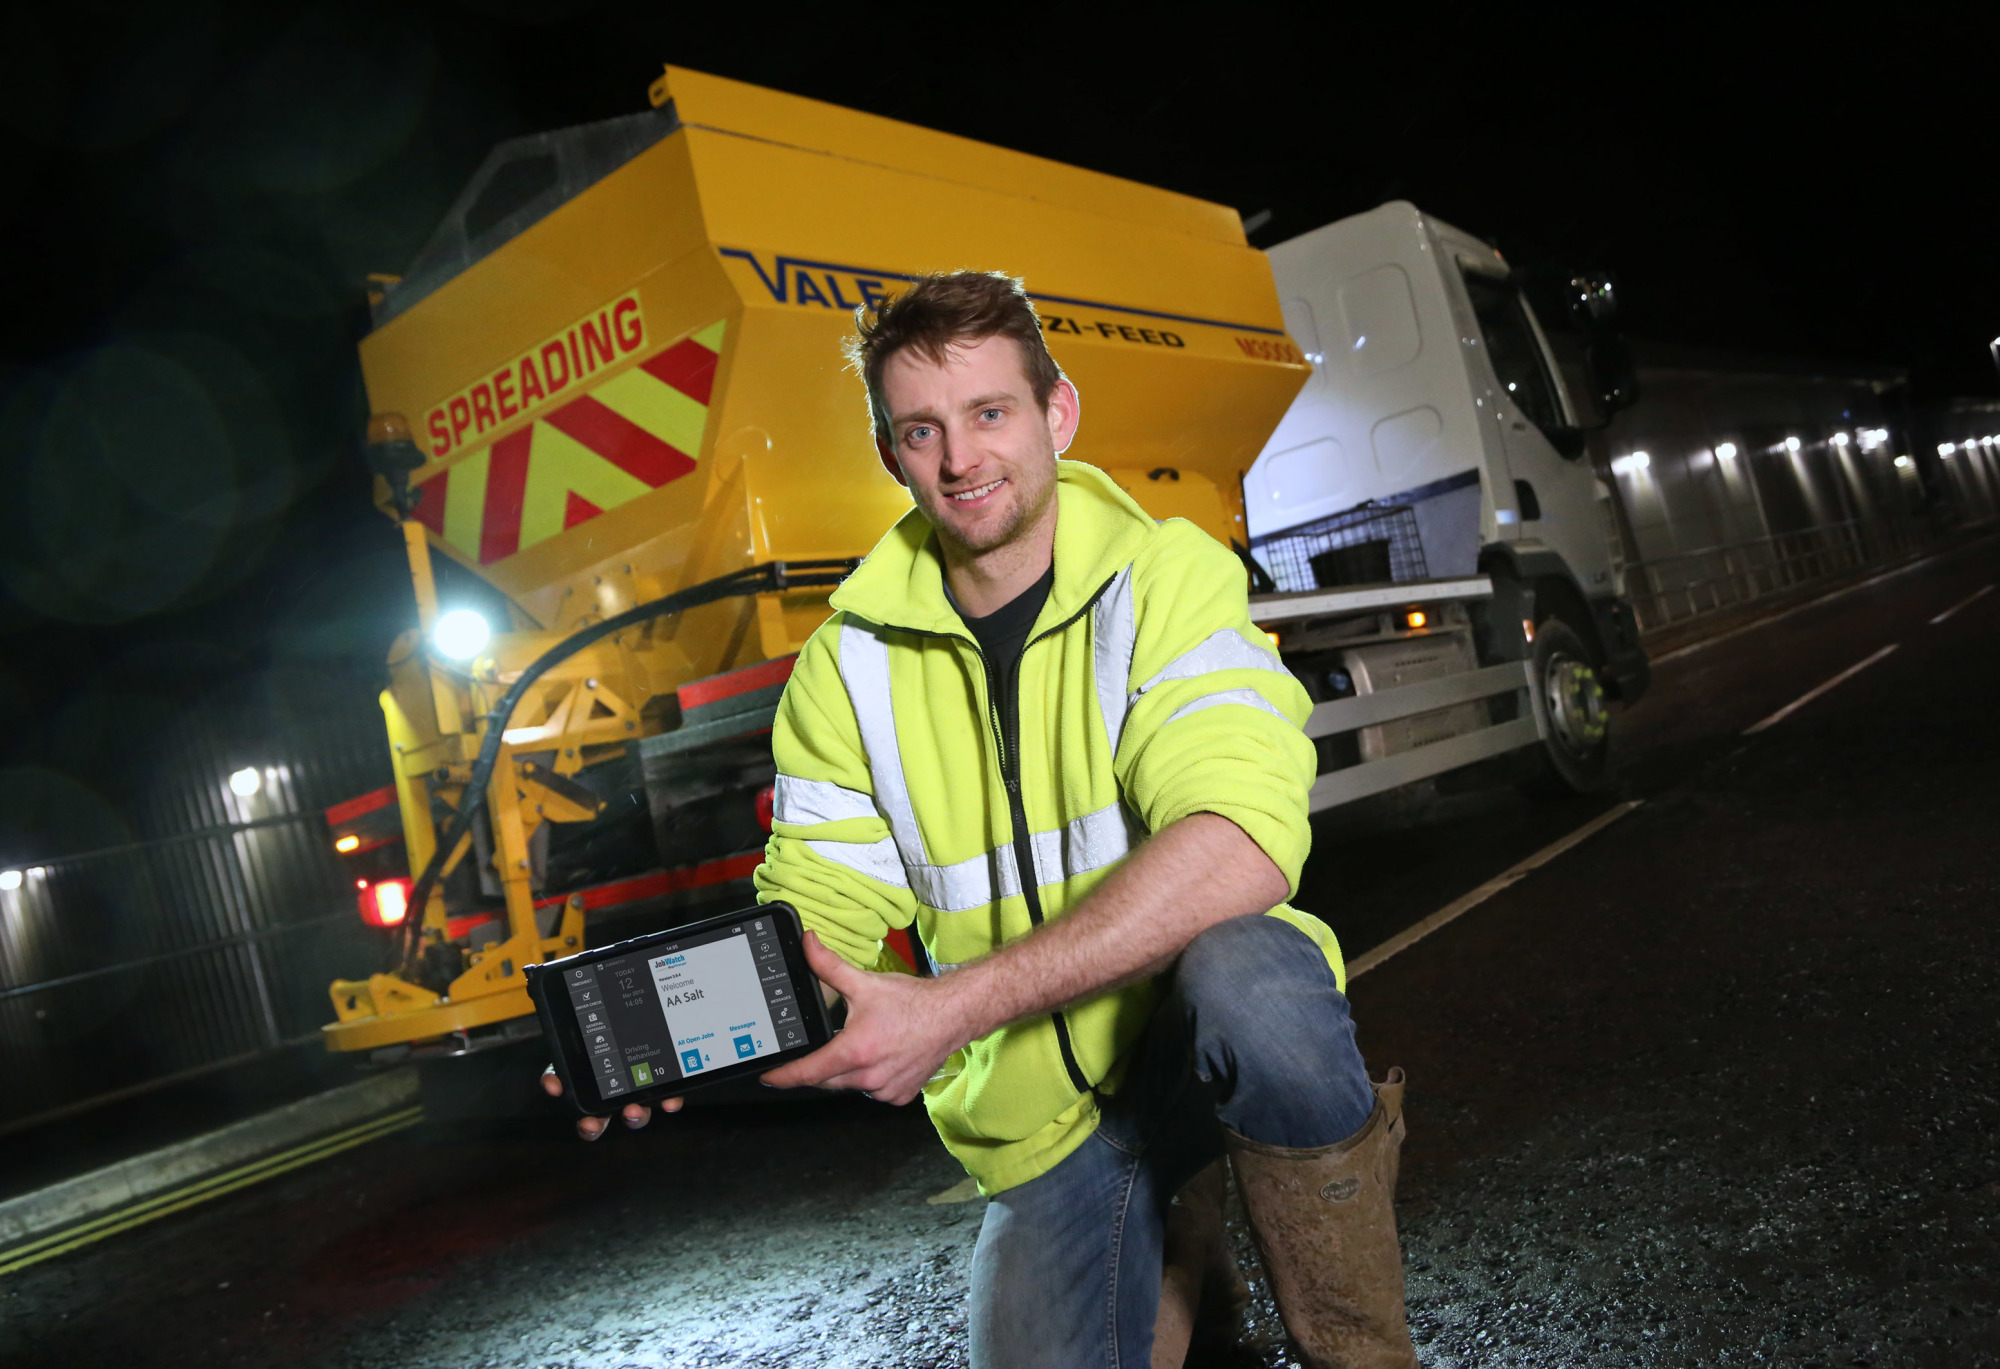 AA Salt gritting services has doubled the productivity of its operators with the introduction of the BigChange workforce management system.